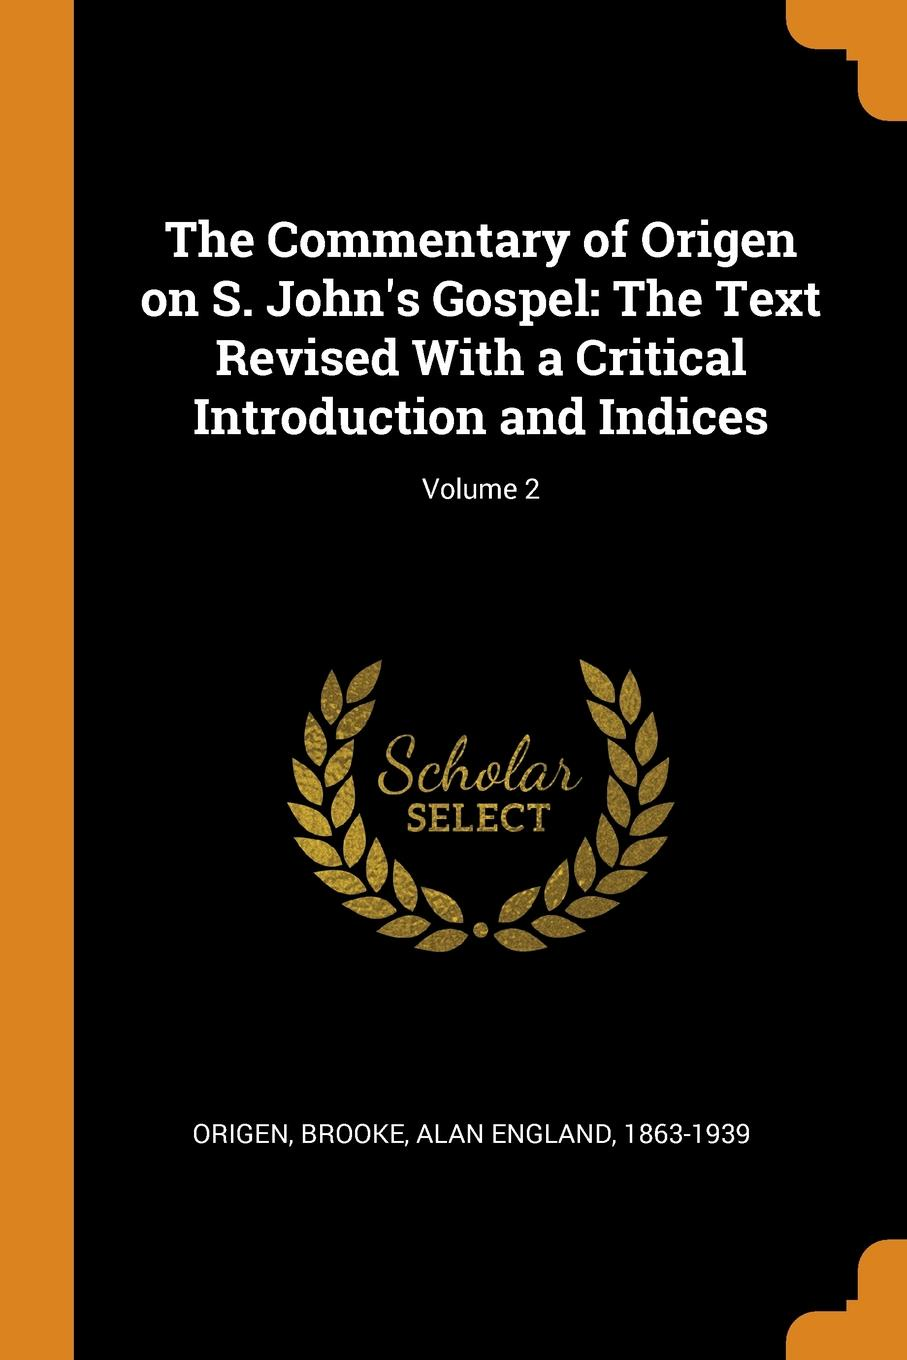 The Commentary of Origen on S. John.s Gospel. The Text Revised With a Critical Introduction and Indices; Volume 2